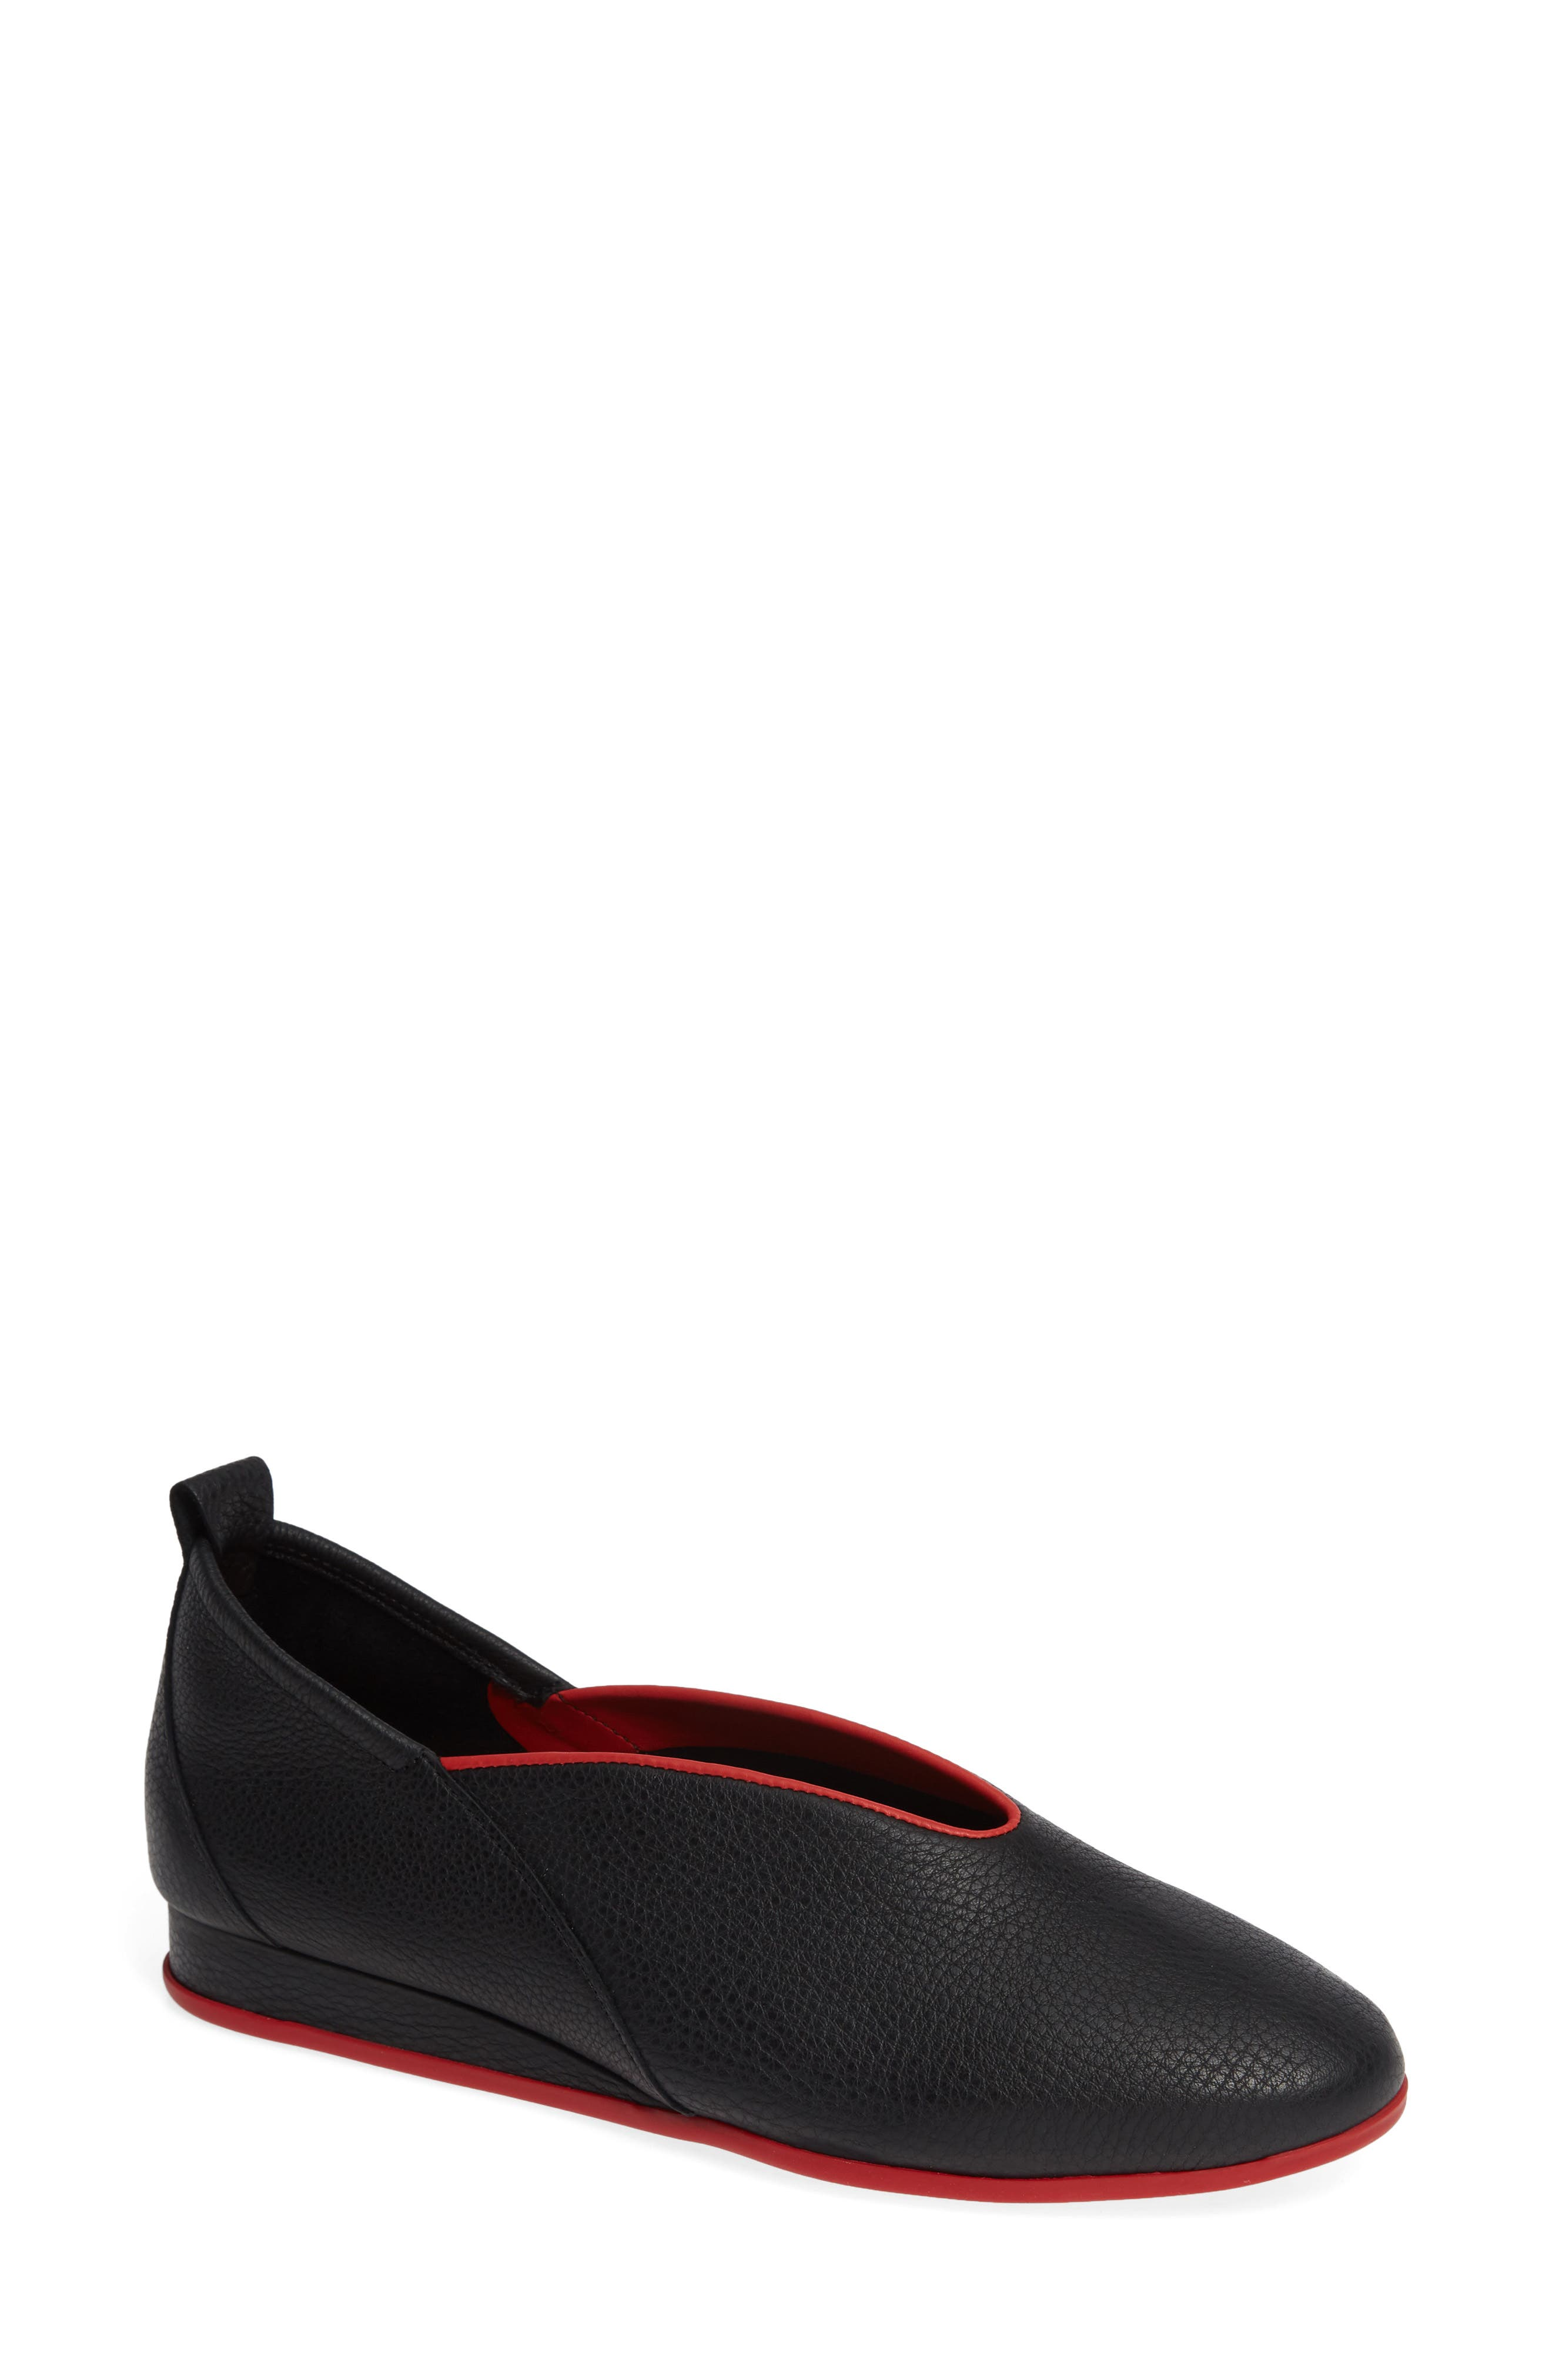 ARCHE Women'S Piassy Leather Demi-Wedge Flats in Noir/ Fue Fabric